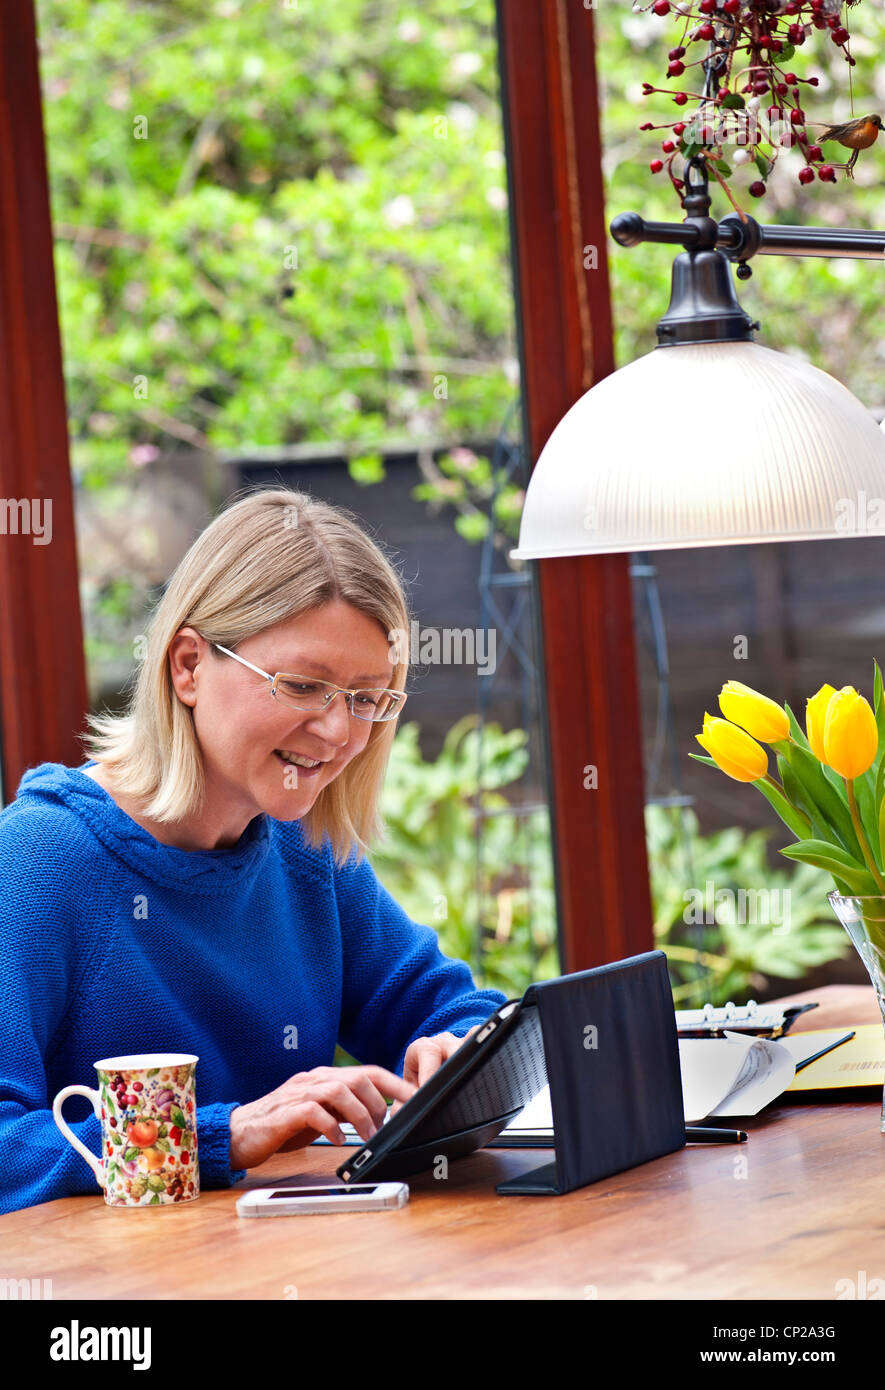 Blond woman working at home in garden conservatory using her tablet iPad computer in its leather stand cover - Stock Image